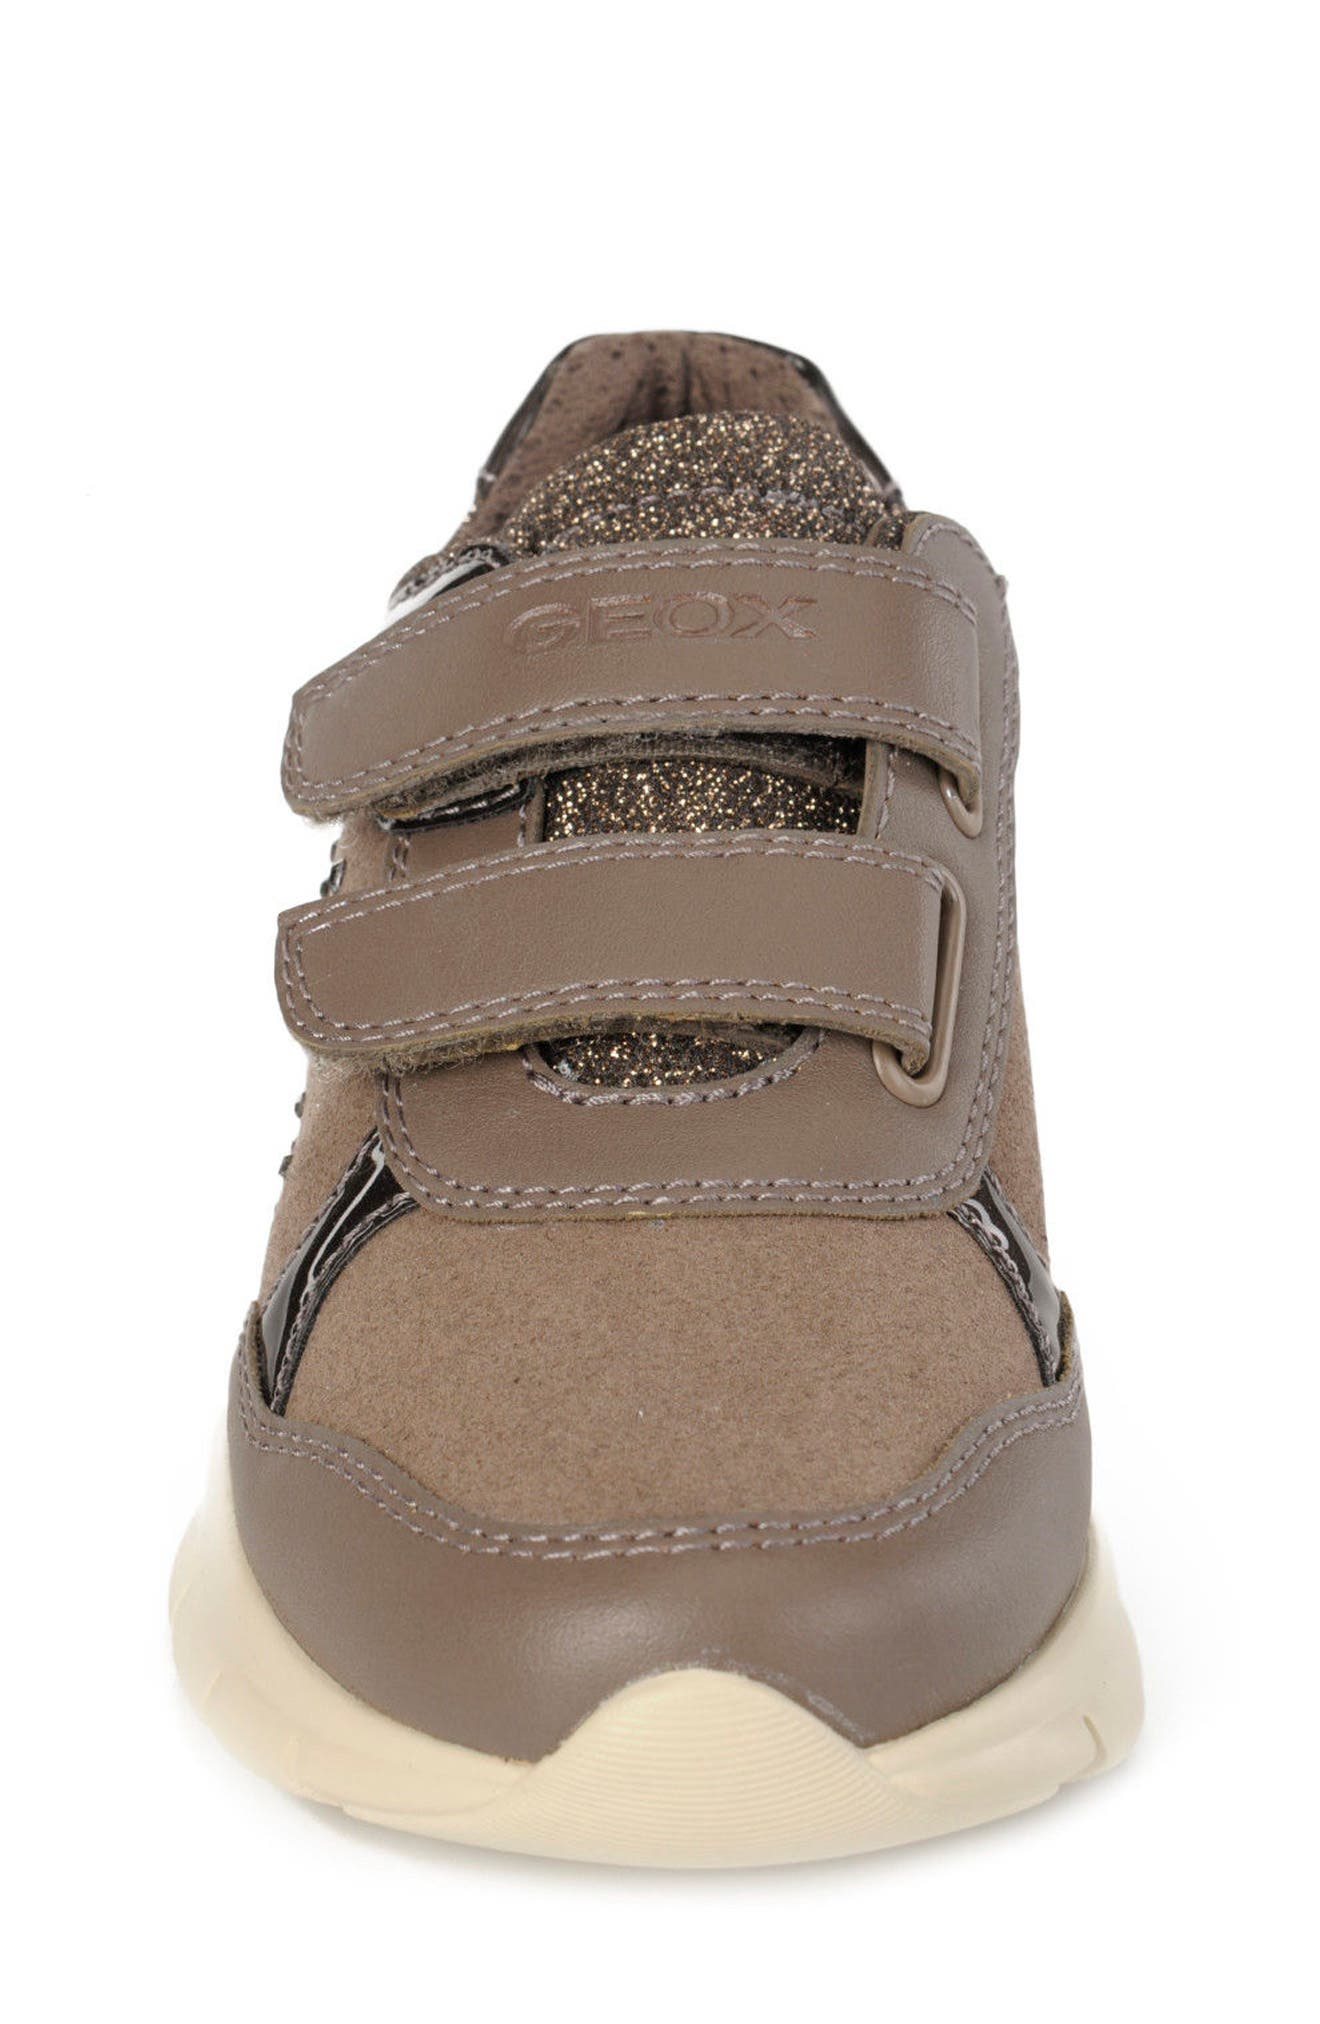 Sukie Sneaker,                             Alternate thumbnail 4, color,                             Dark Beige